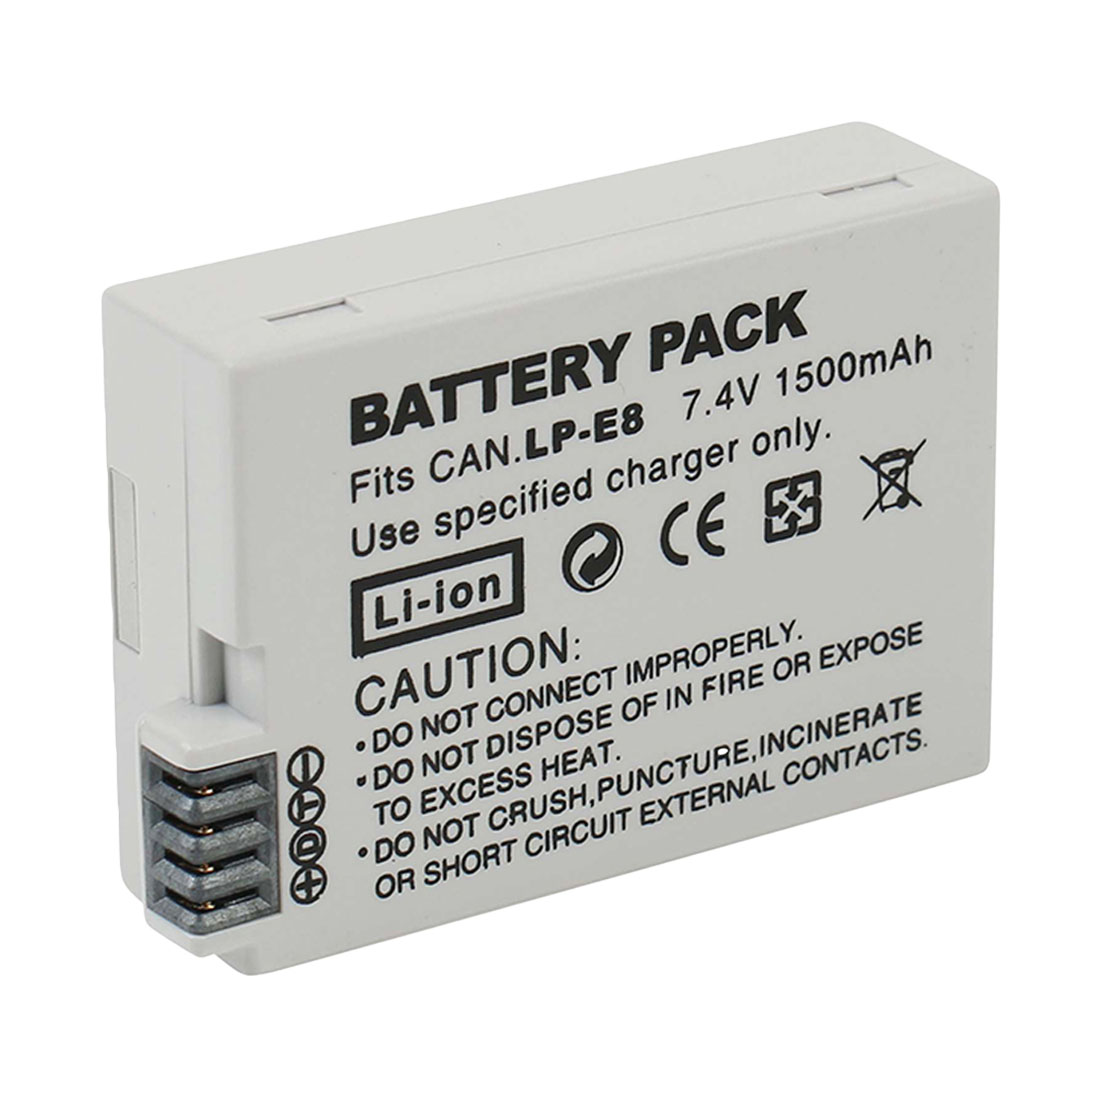 High Quality LP-E8 <font><b>Battery</b></font> Pack Bateria LP-E8 Lp E8 For <font><b>Canon</b></font> 550D 600D <font><b>650D</b></font> 700D X4 X5 X6i X7i T2i T3i T4i T5i DSLR Camera 0.11 image